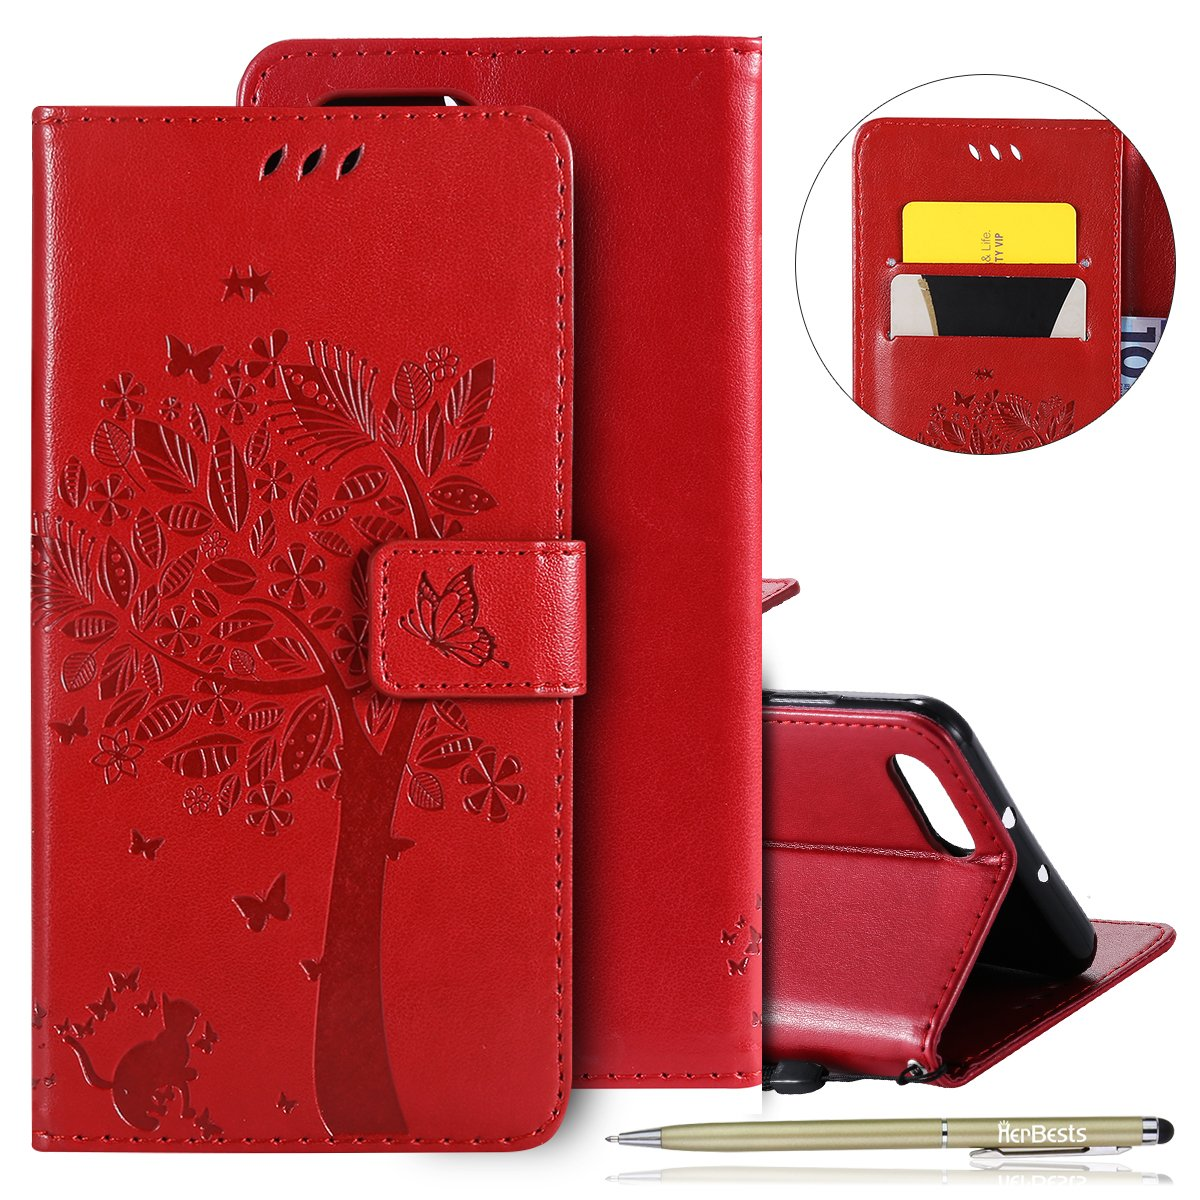 Coque Huawei Honor View 10, Etui Housse de Protection pour Huawei Honor V10, Herbests Pochette Huawei Honor View 10 Coque à Rabat Magnétique Housse en Cuir Etui de Protection avec Motif en Relief de Chat Ultra Slim Mince Anti Choc Leather Pu Case avec Drag